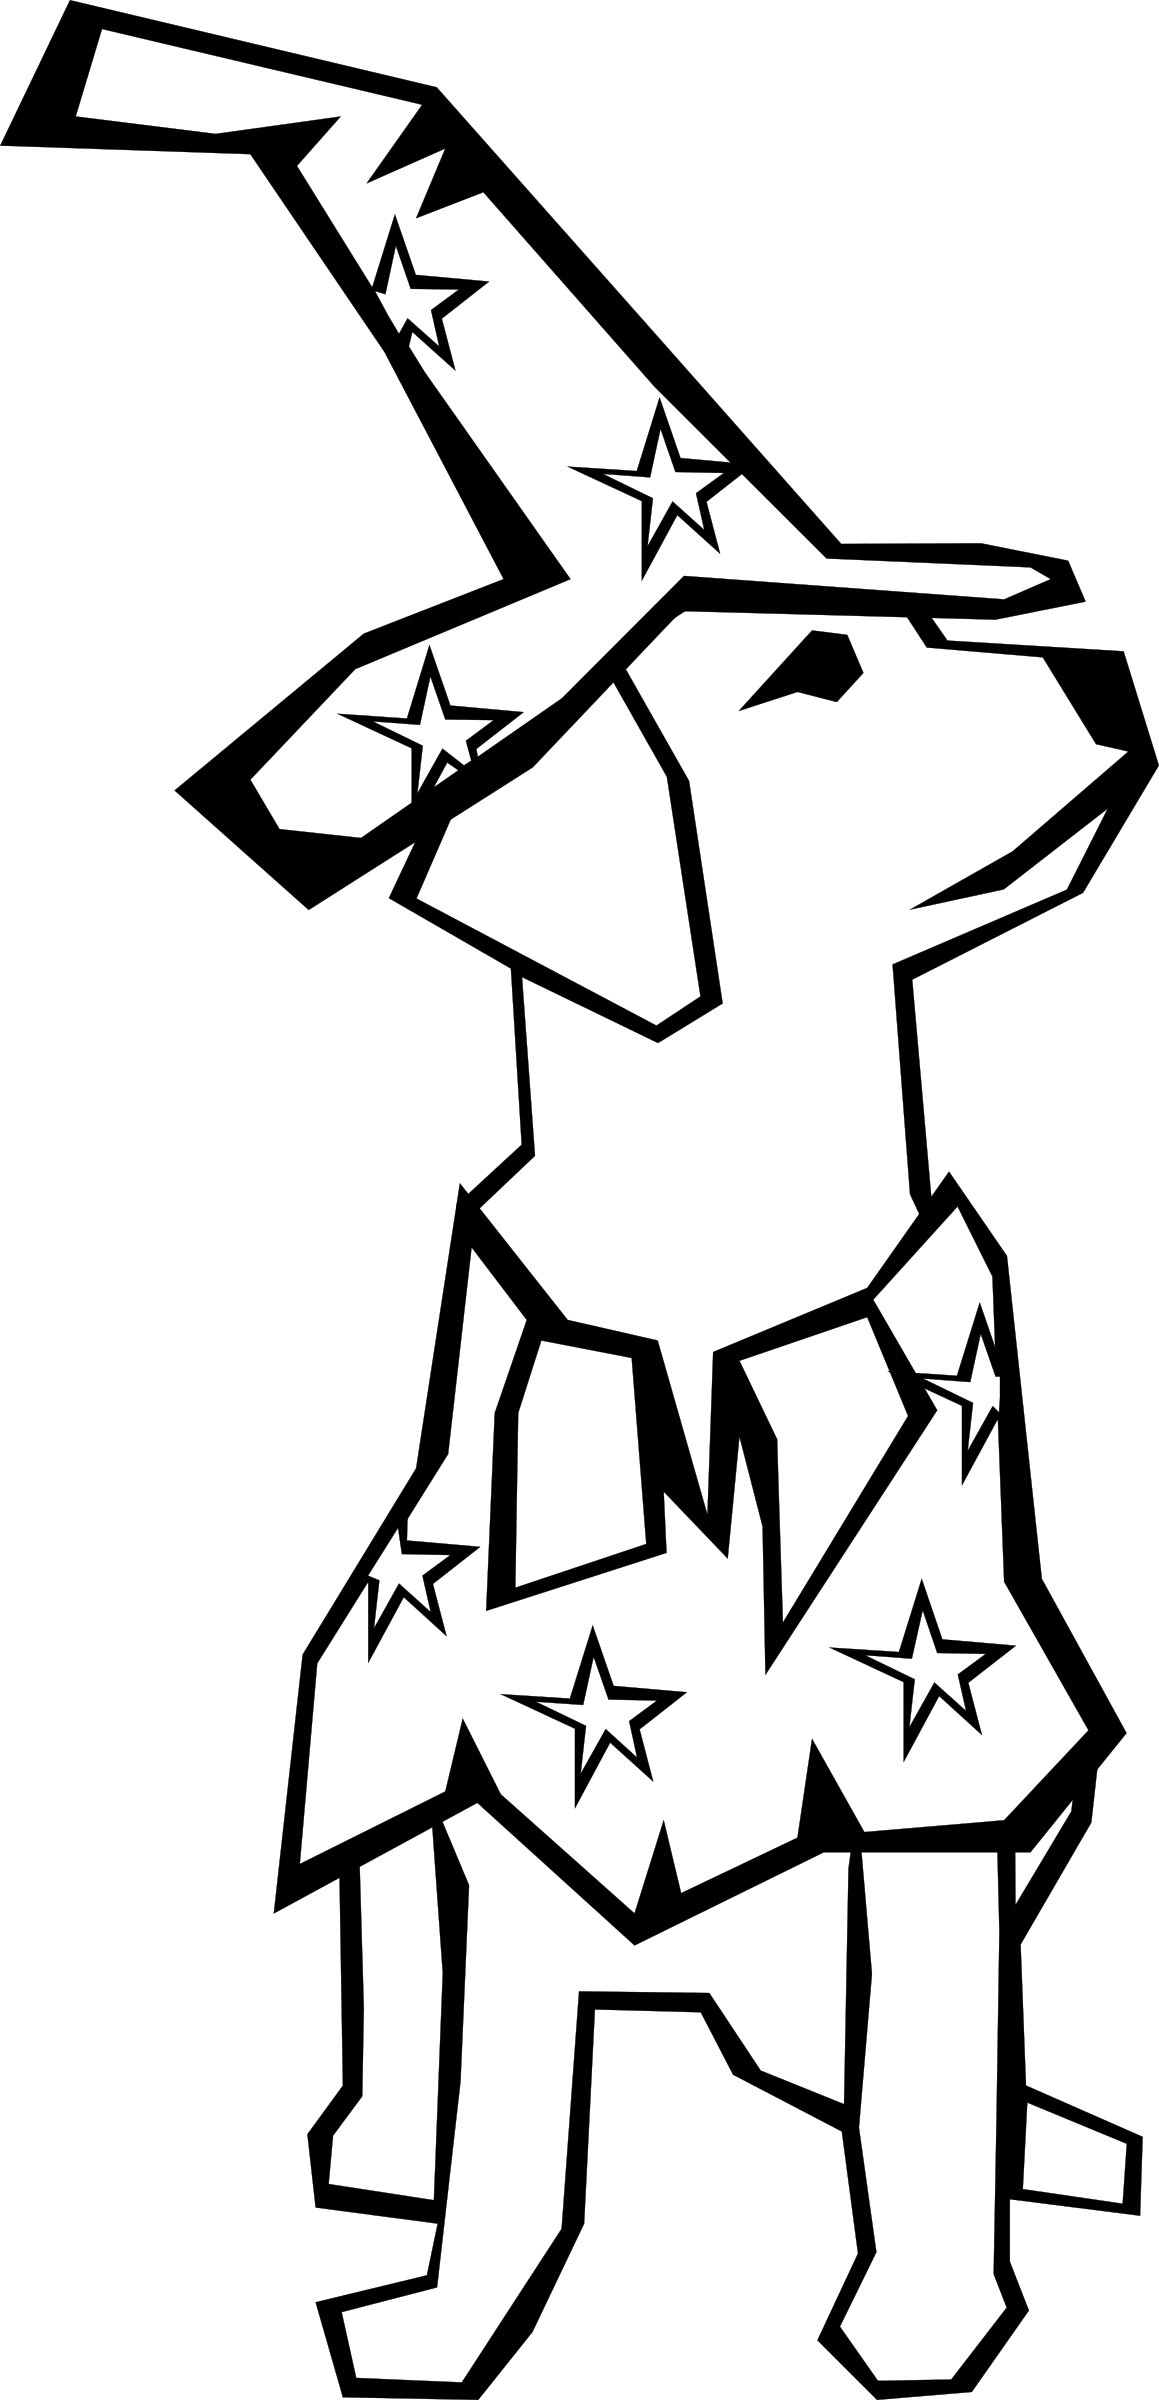 Dog costume clipart royalty free stock Simple Drawing Book at GetDrawings.com | Free for personal use ... royalty free stock